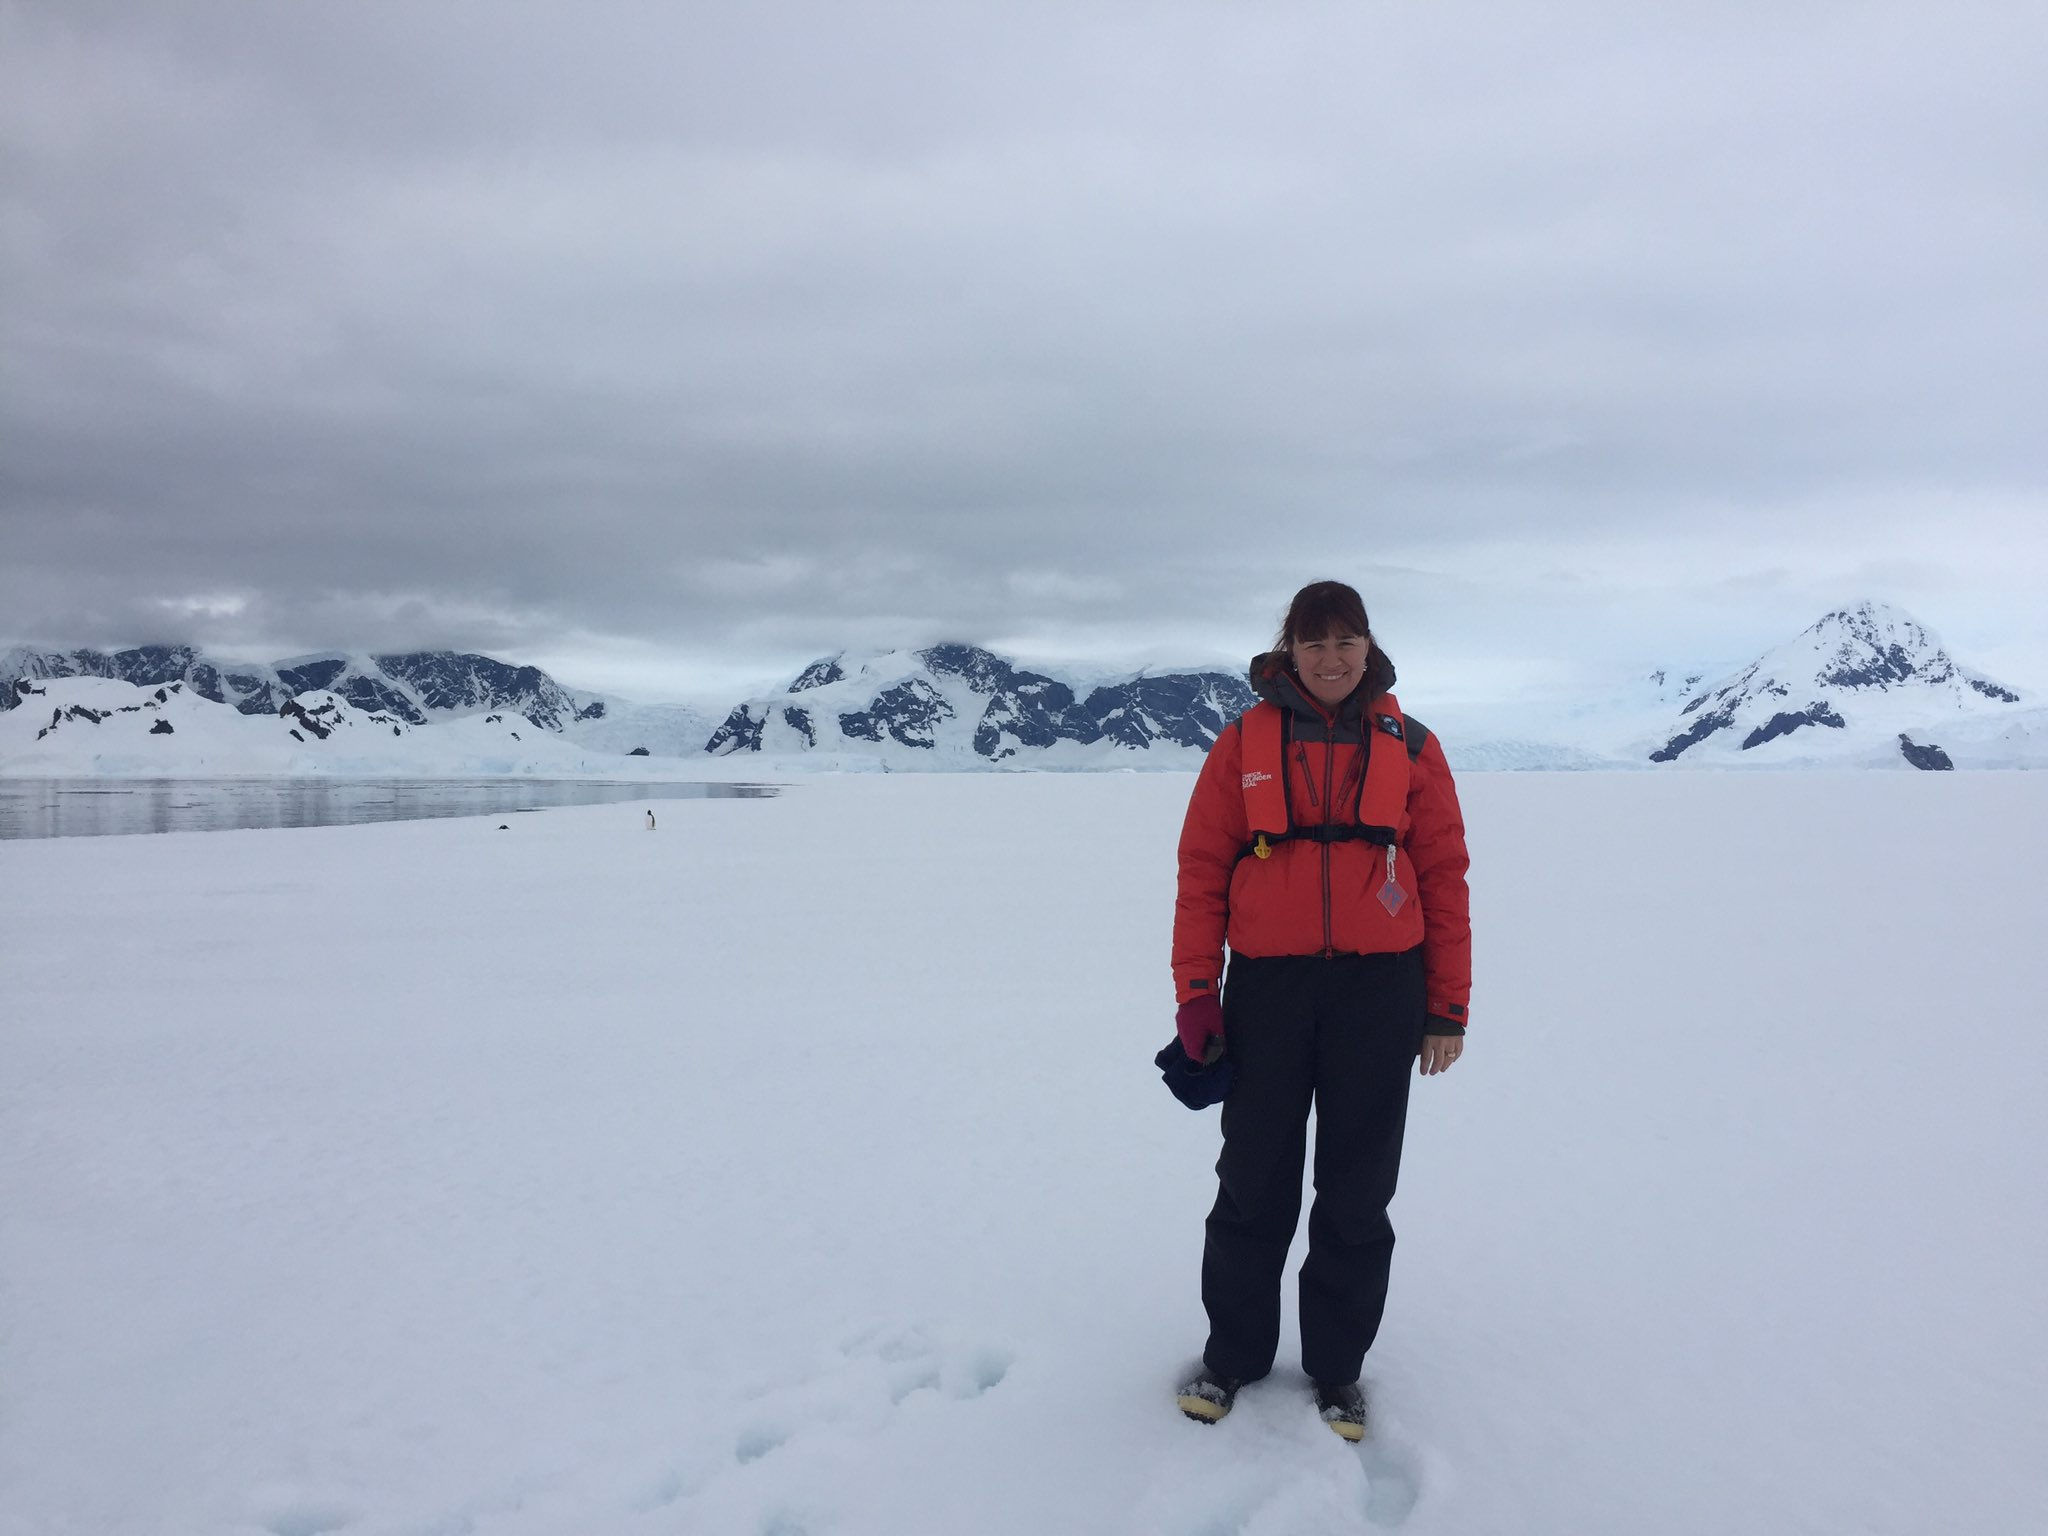 I'm Justine I'm an #actuallivingscientist who works on#antarctic & threatened spp conservation & I #DressLikeAWoman https://t.co/2jJtH4YQgn